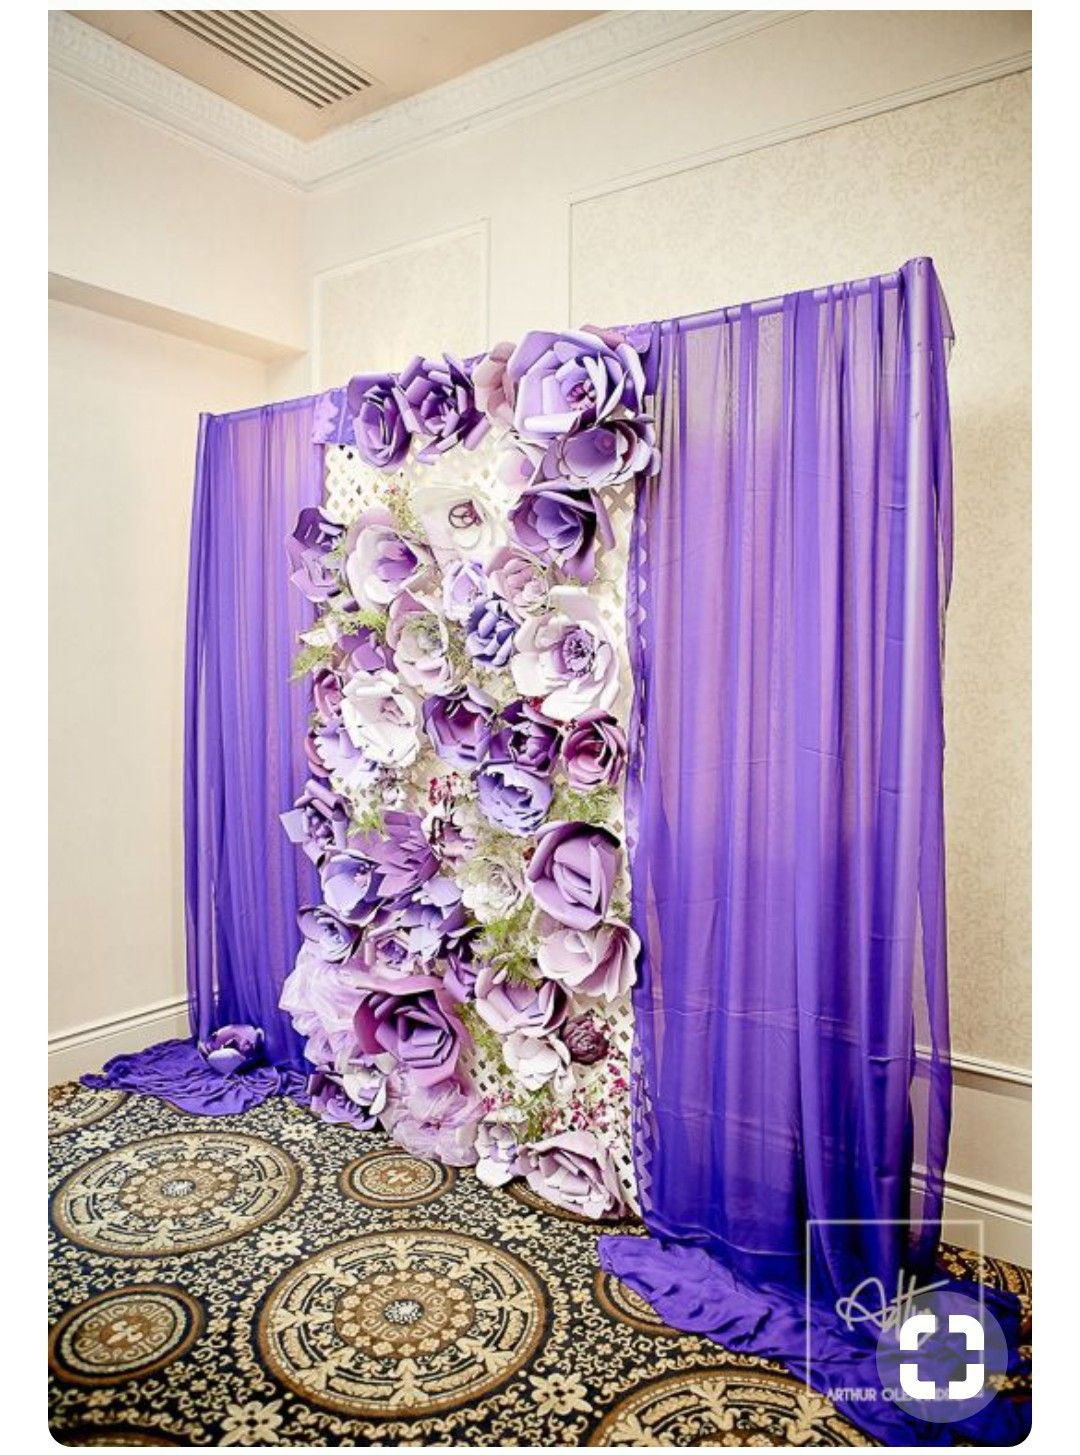 Pin by Patsy Montesino on backdrops in   Pinterest  Paper